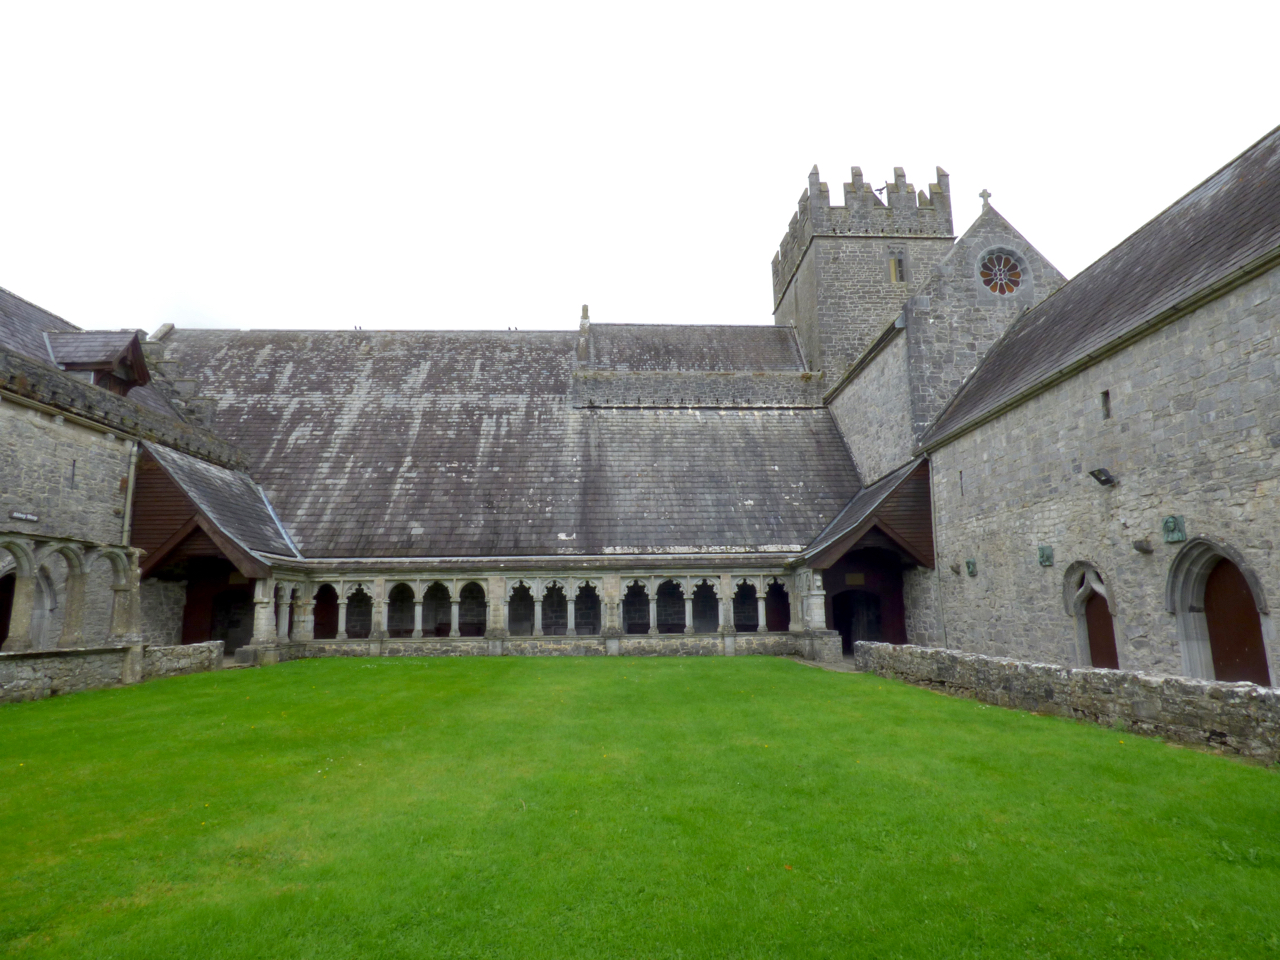 Holy Cross Abbey in Tipperary, Ireland from the outside with lawn